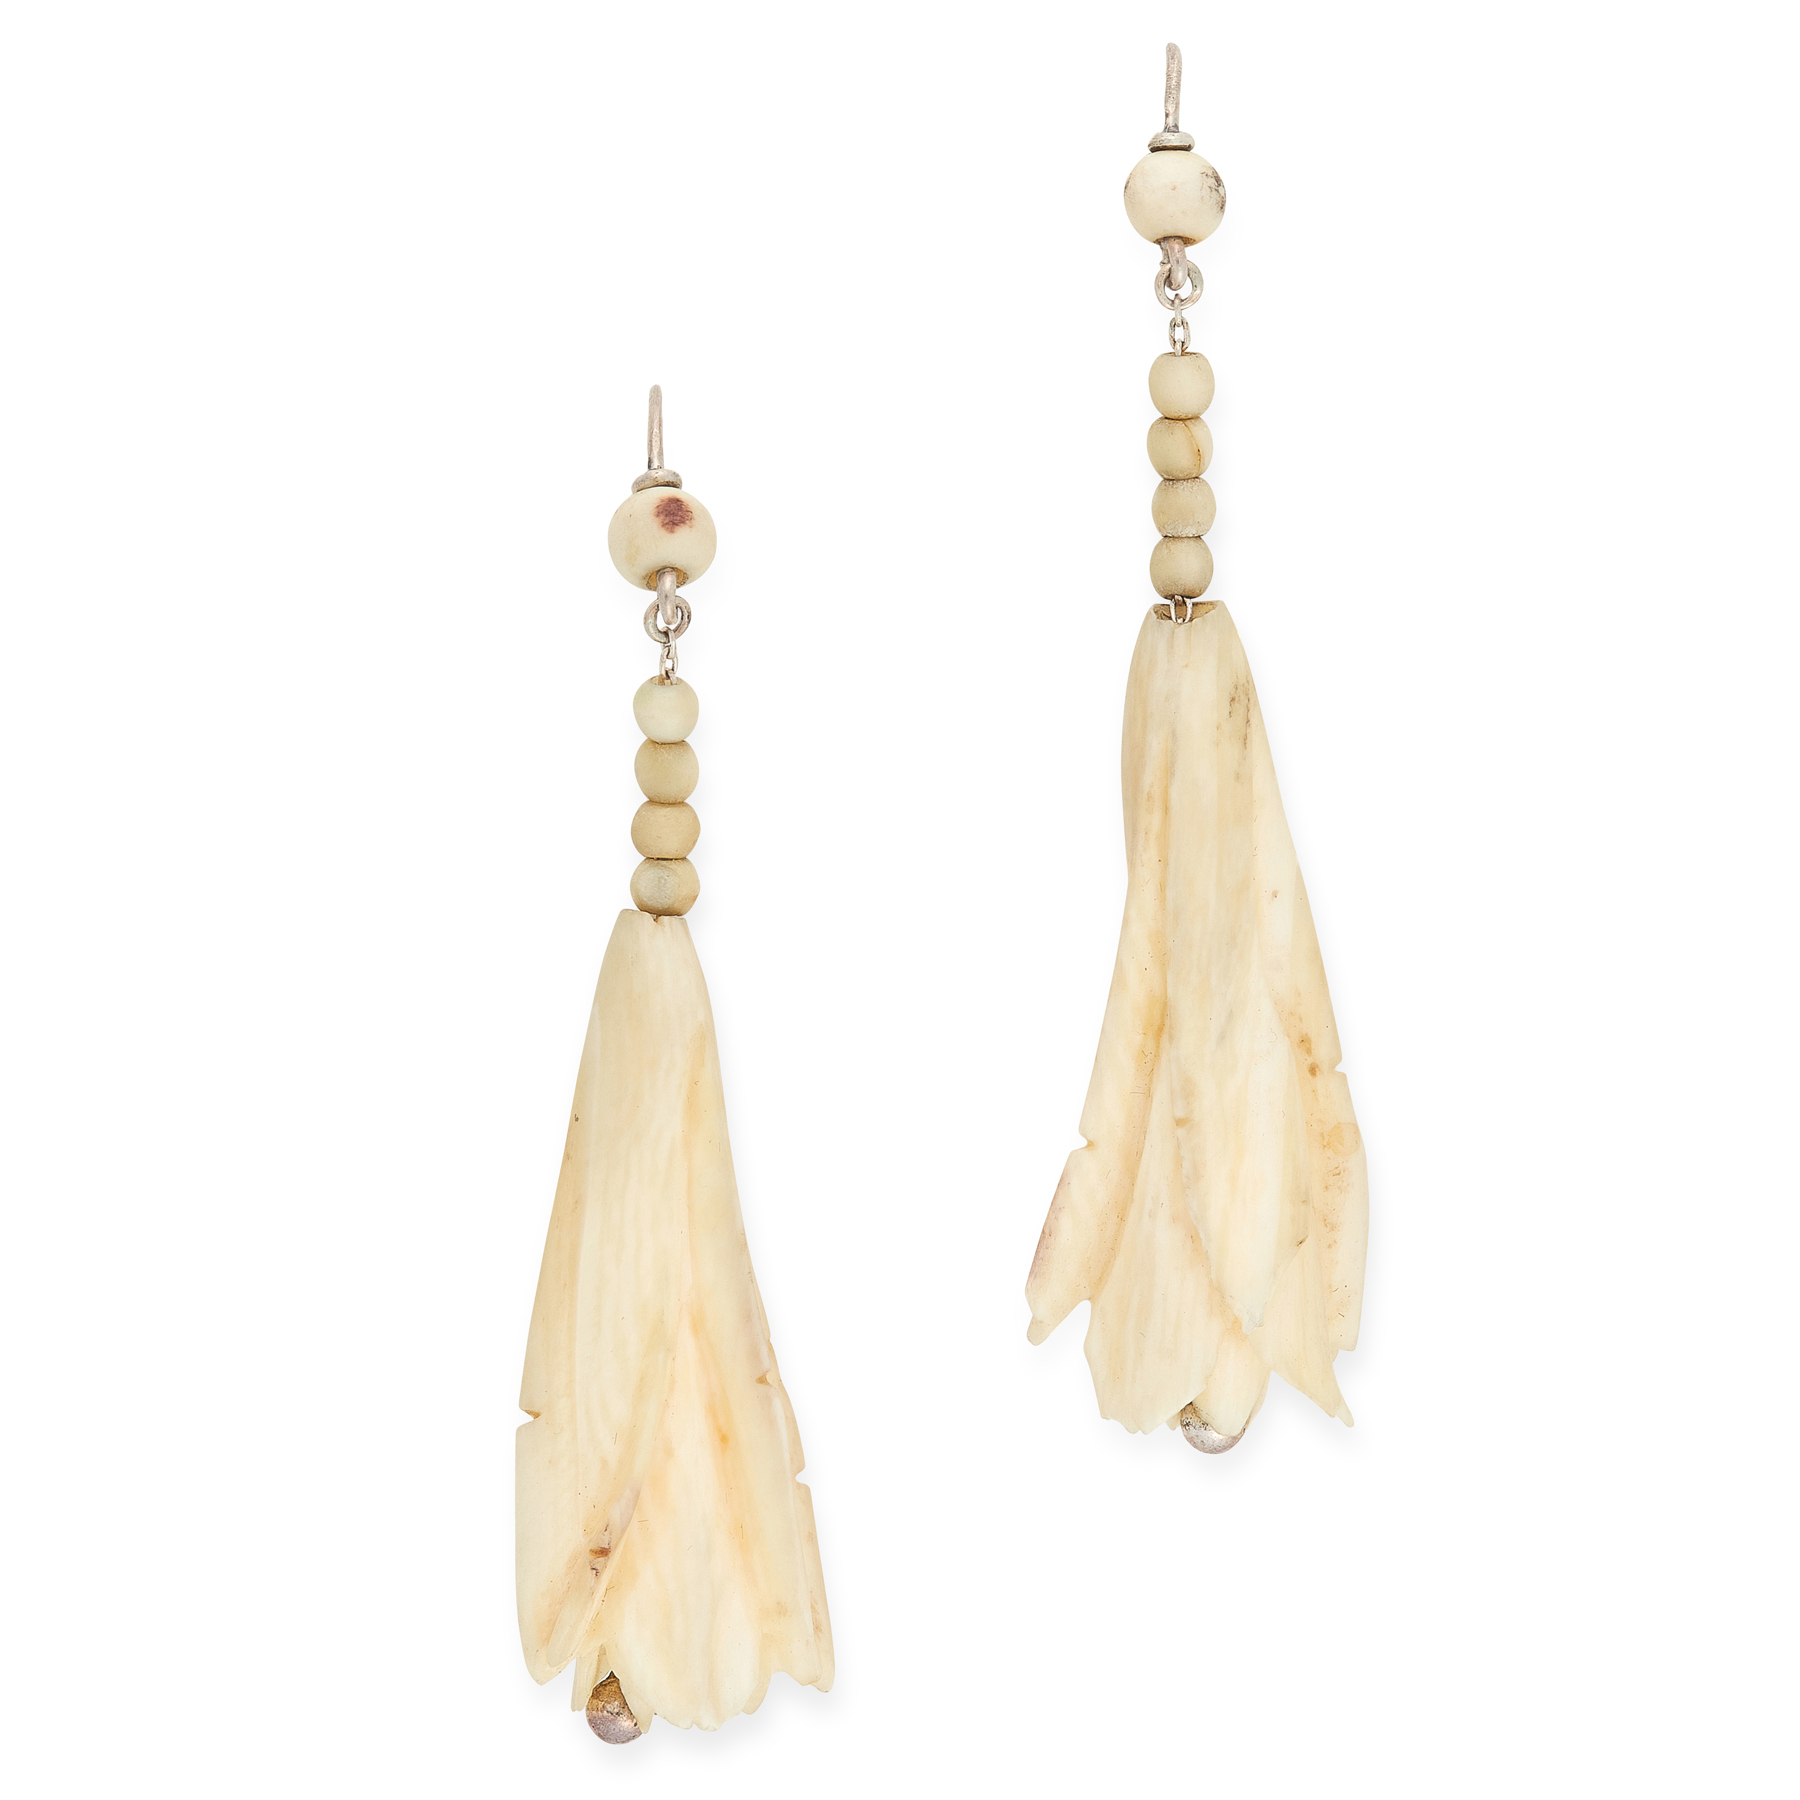 A PAIR OF ANTIQUE VICTORIAN IVORY FUSCHIA EARRINGS, 19TH CENTURY in sterling silver, each carved